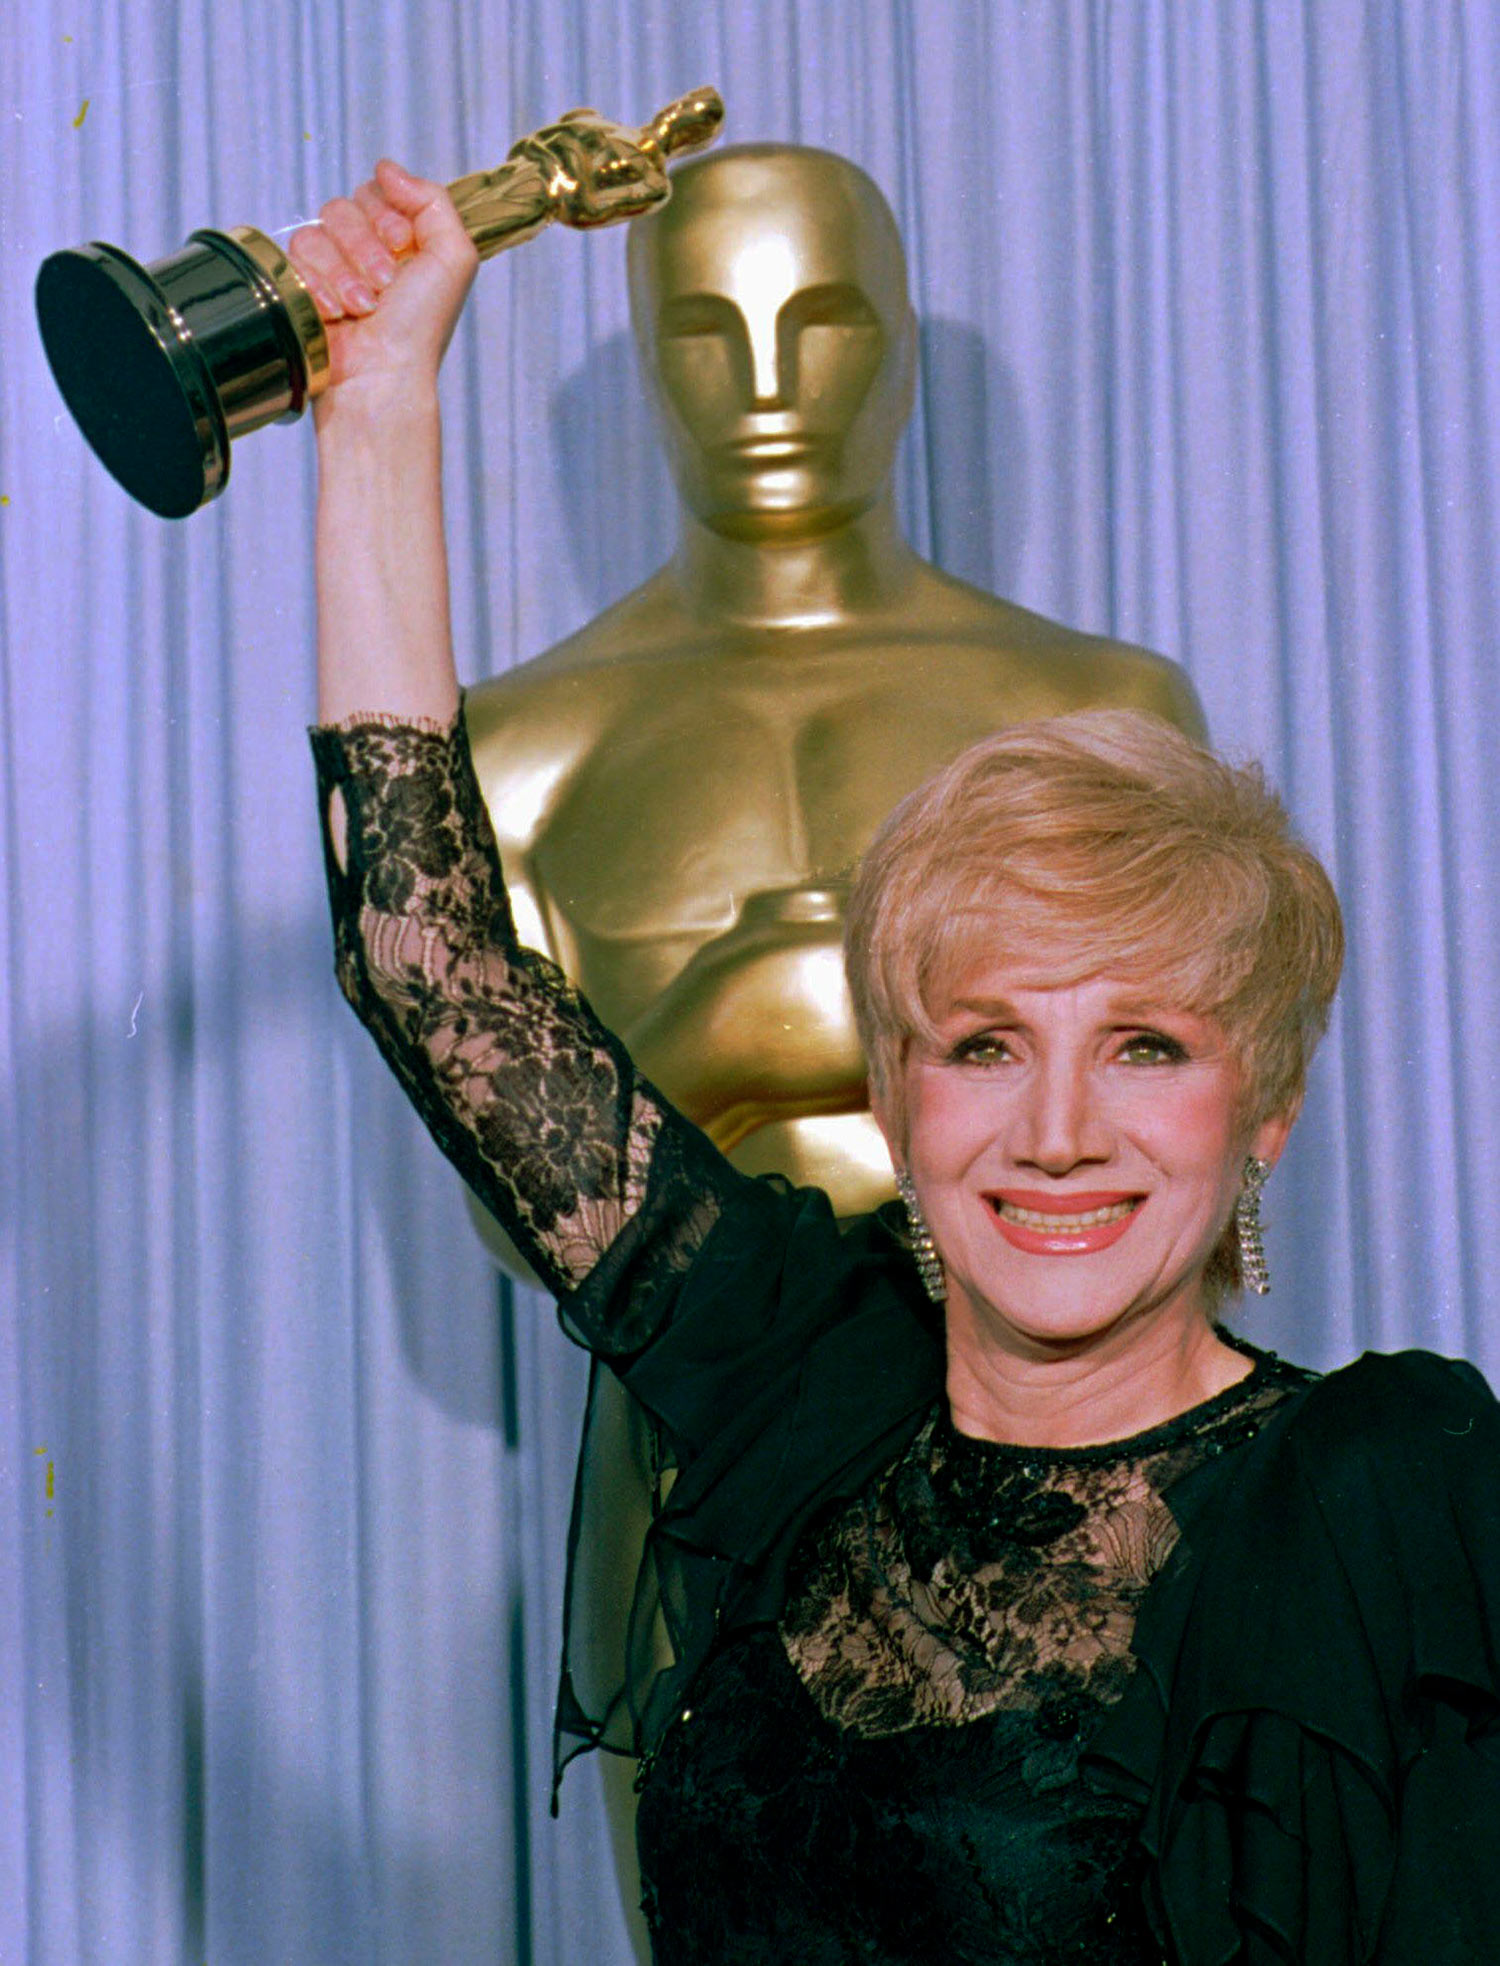 "Photo of Olympia Dukakis holding her Oscar at the Shrine Auditorium in Los Angles after being honored at the 60th Academy Awards as best supporting actress for her role in ""Moonstrck."" She wears a black, lacy gown and smiles brightly. Behind her, a large oscar statue and purple curtain are seen."